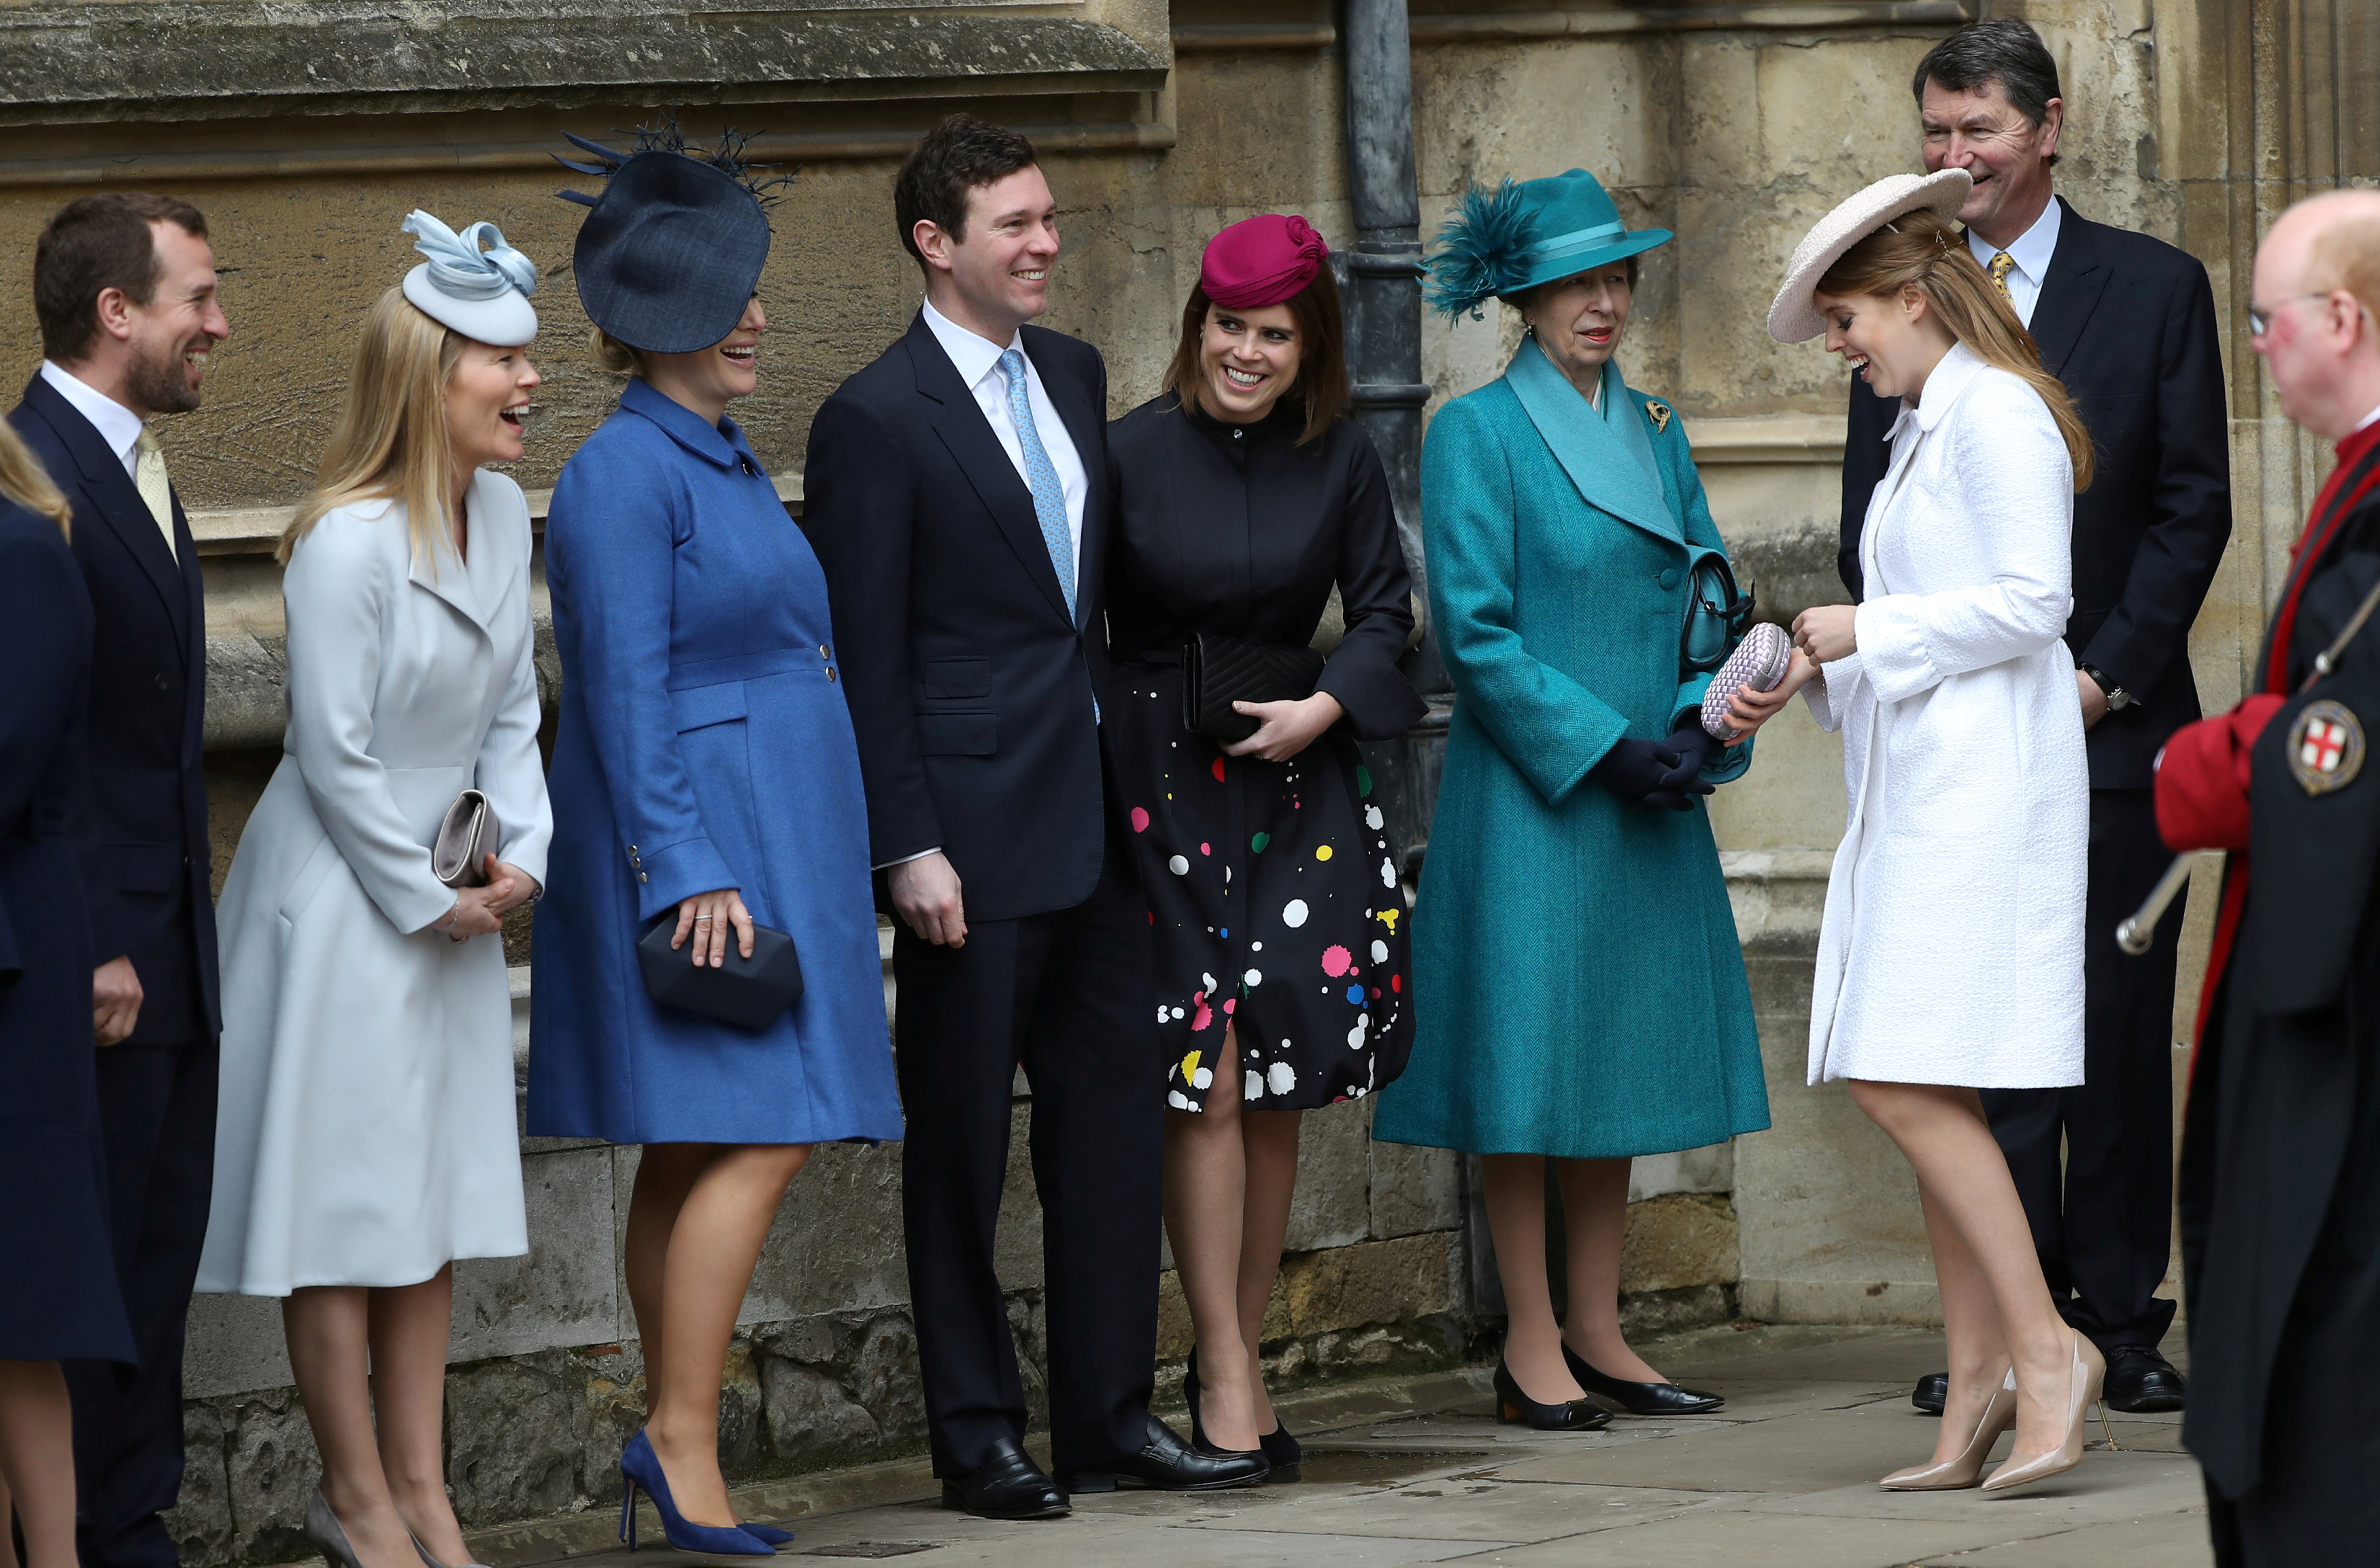 WINDSOR, ENGLAND - APRIL 1: Peter Phillips, Autumn Phillips, Zara Tindall, Jack Brooksbank, Princess Eugenie, Princess Anne, Princess Royal, Princess Beatrice and Vice Admiral Sir Timothy Laurence arrive for the Easter Mattins Service at St. George's Chapel at Windsor Castle on April 1, 2018 in Windsor, England. (Photo by Tolga Akmen - WPA Pool/Getty Images)